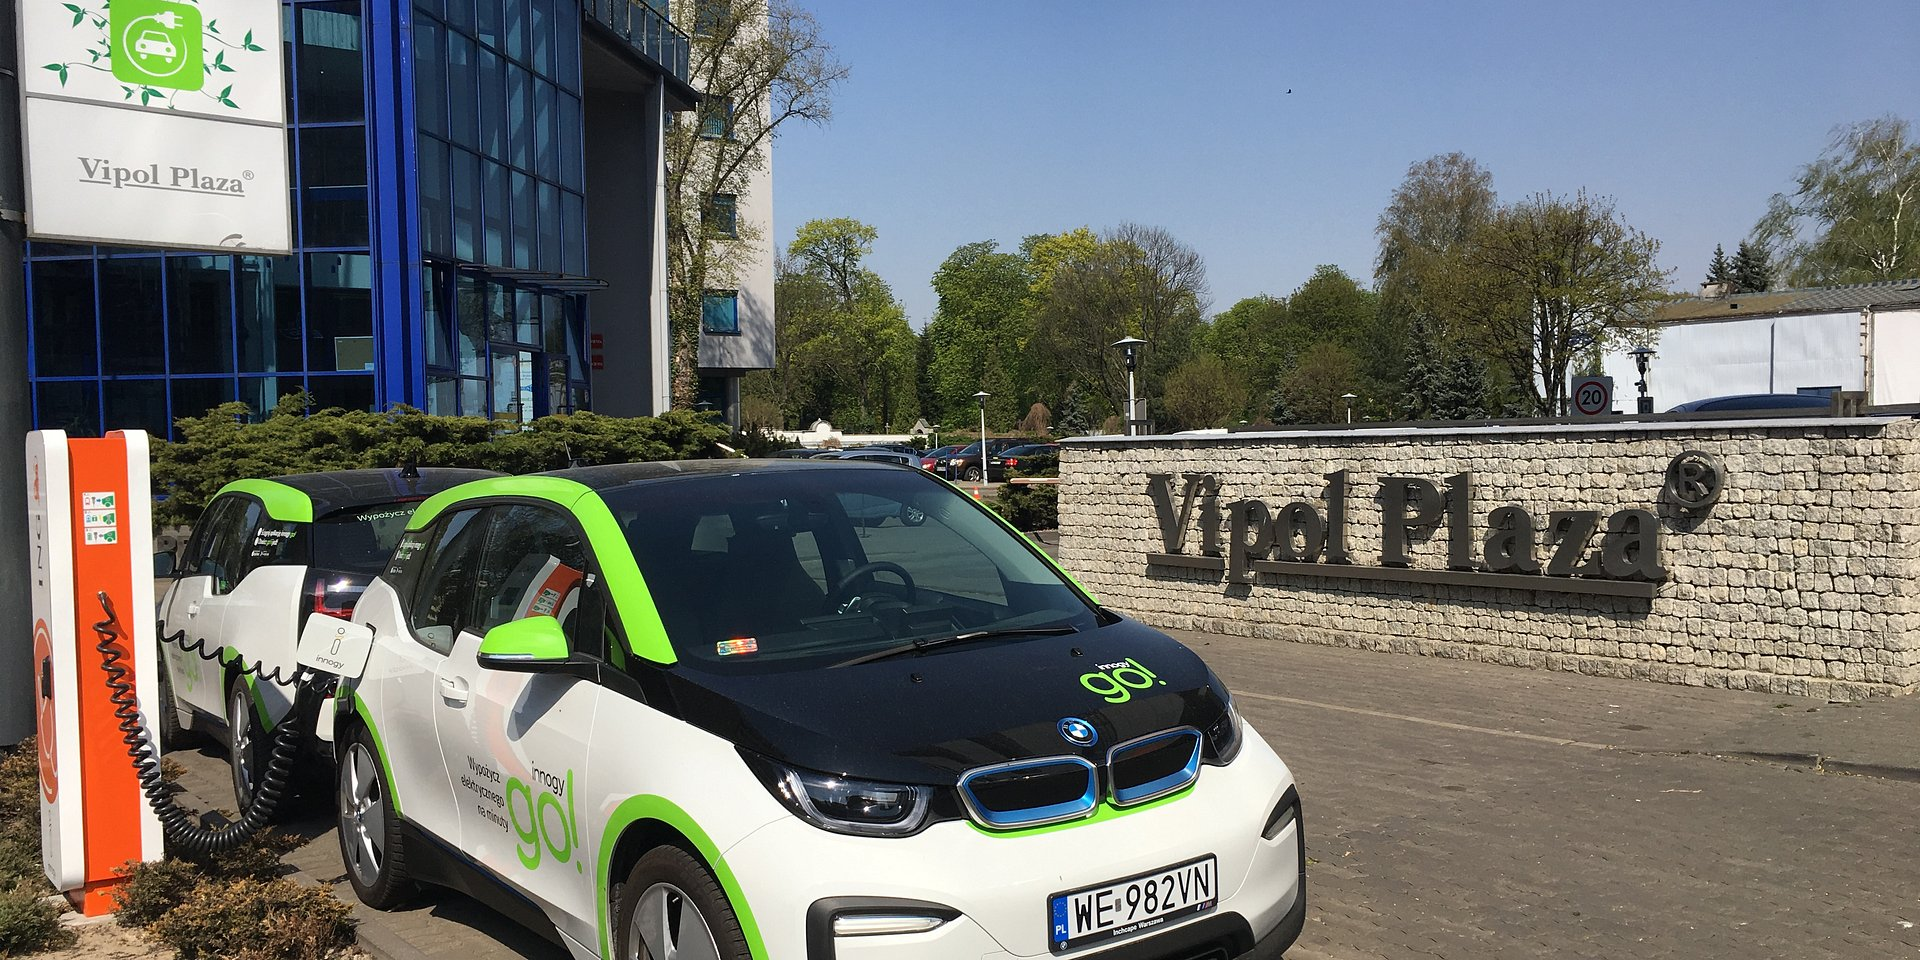 Vipol Plaza with electric car sharing